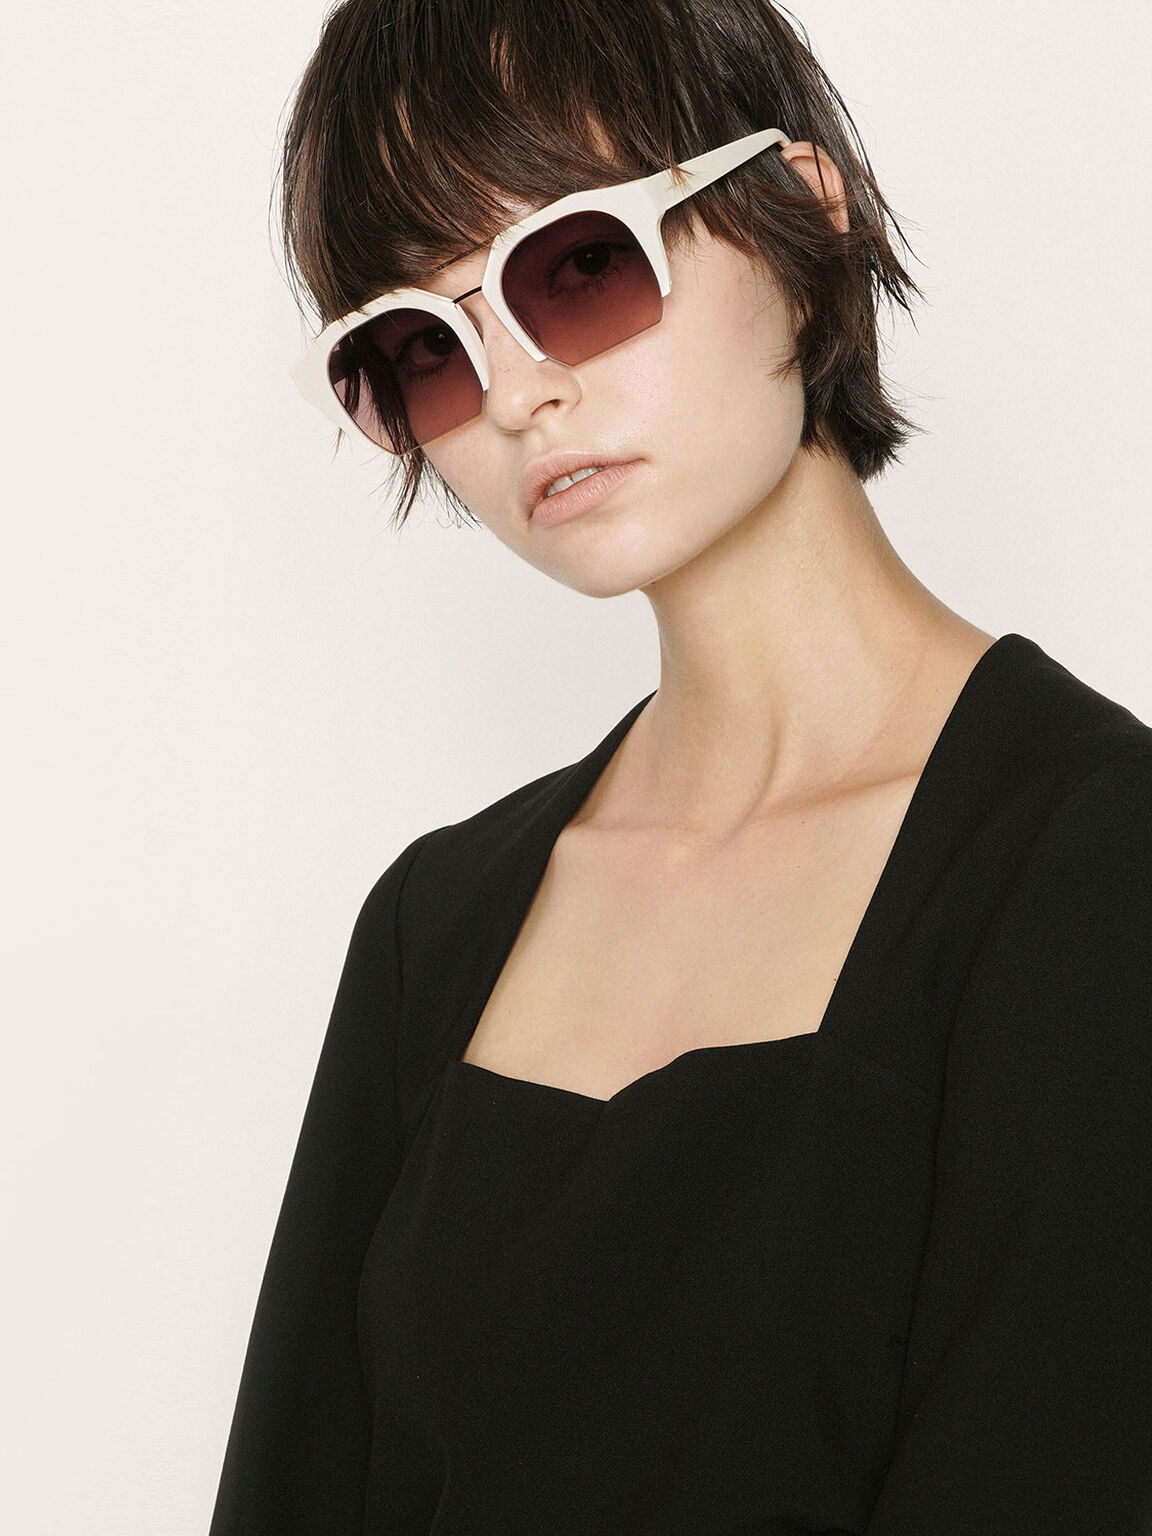 Cut-Off Frame Geometric Sunglasses, Mauve, hi-res